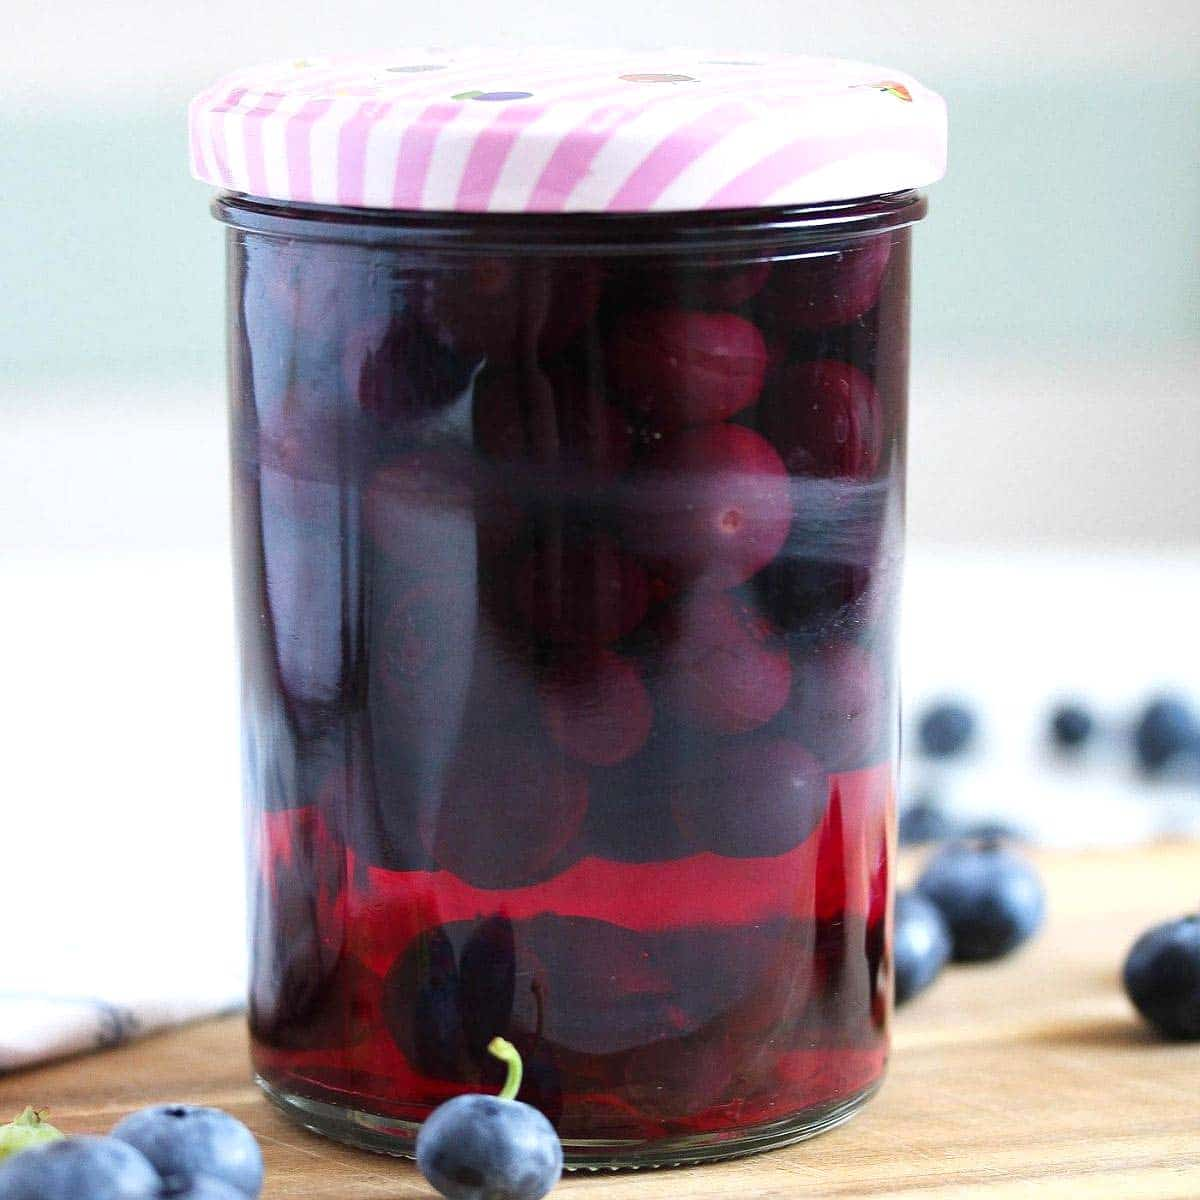 preserved blueberries in a jar